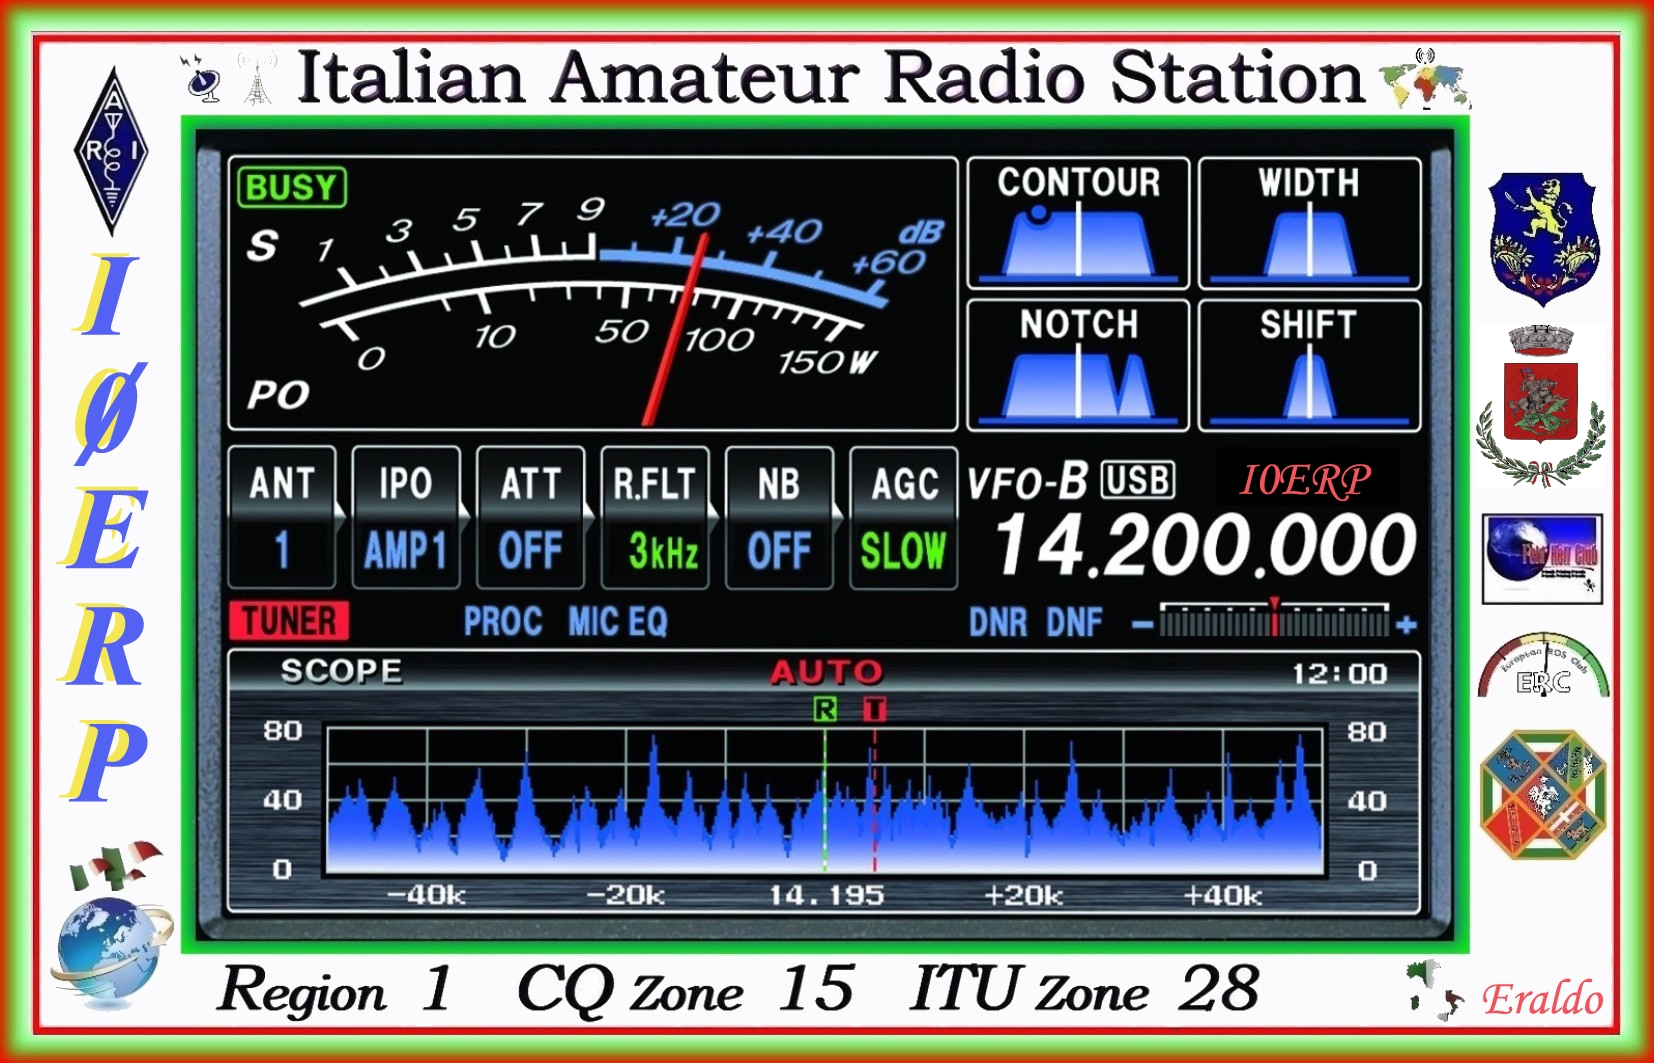 QSL image for I0ERP